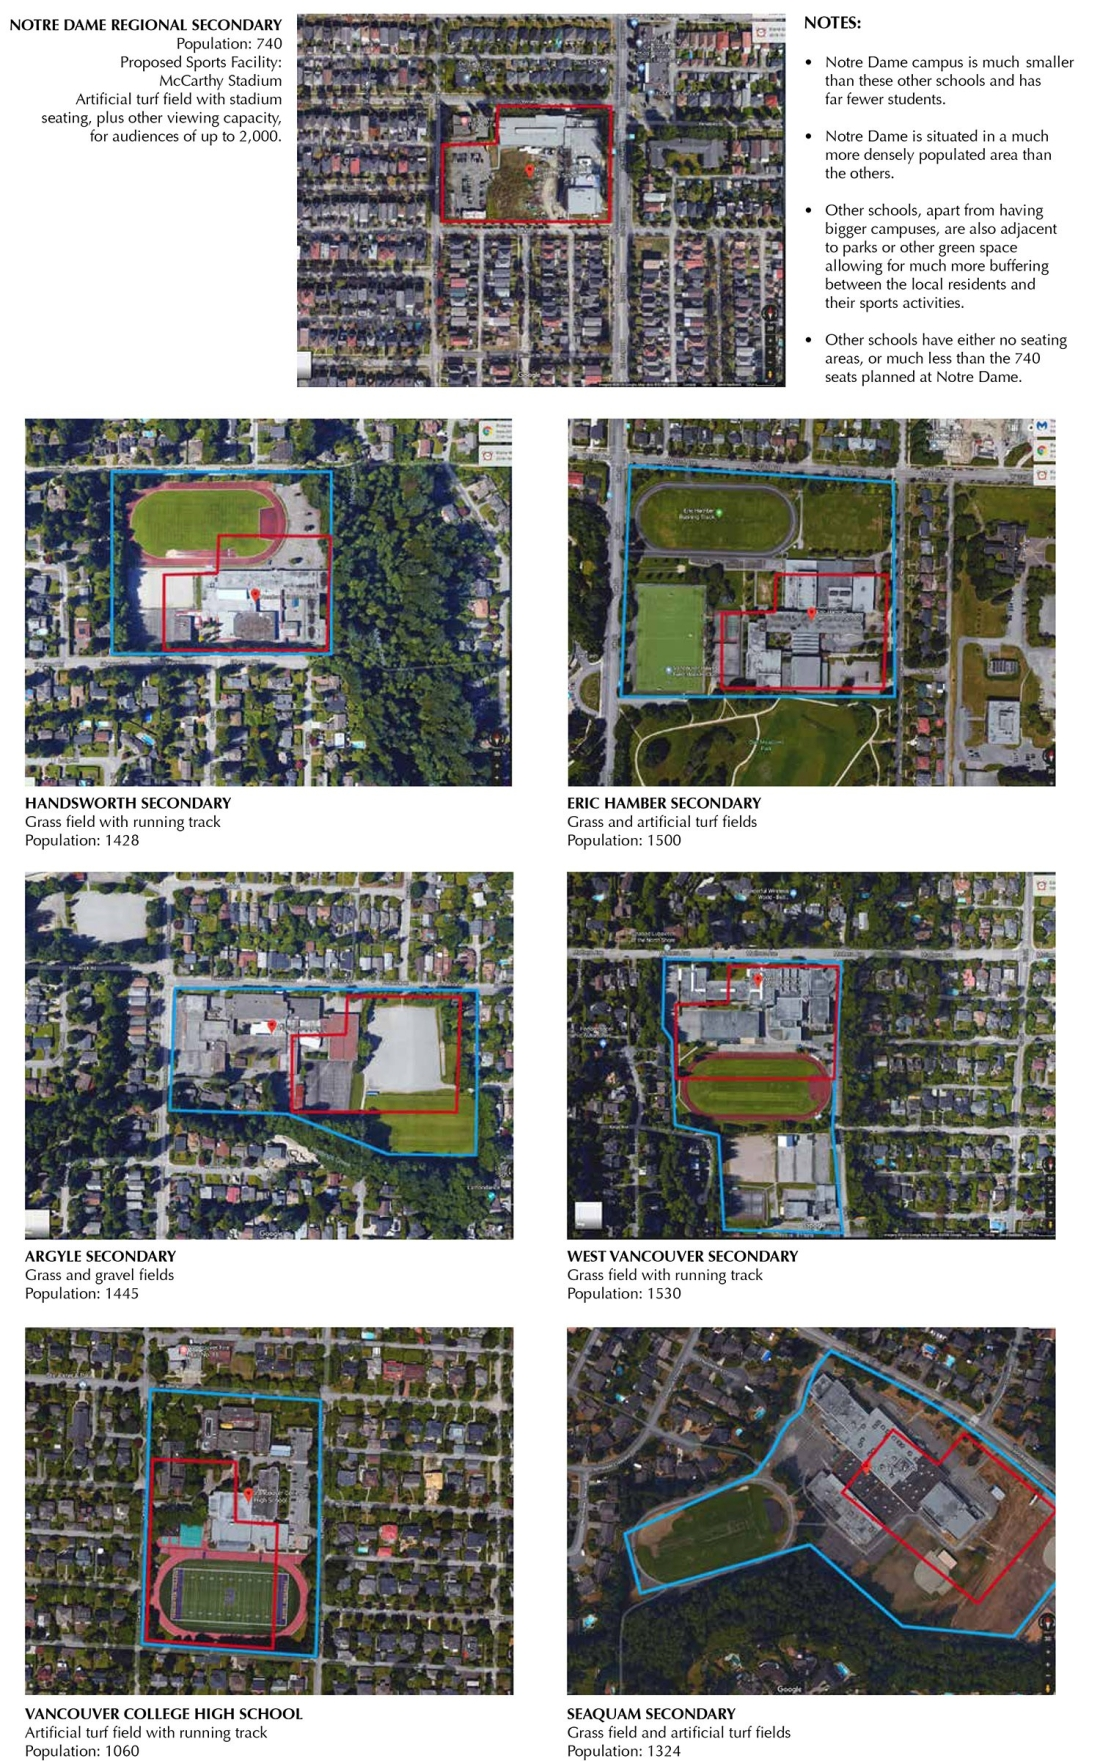 school-stadiums-comparisons.jpg